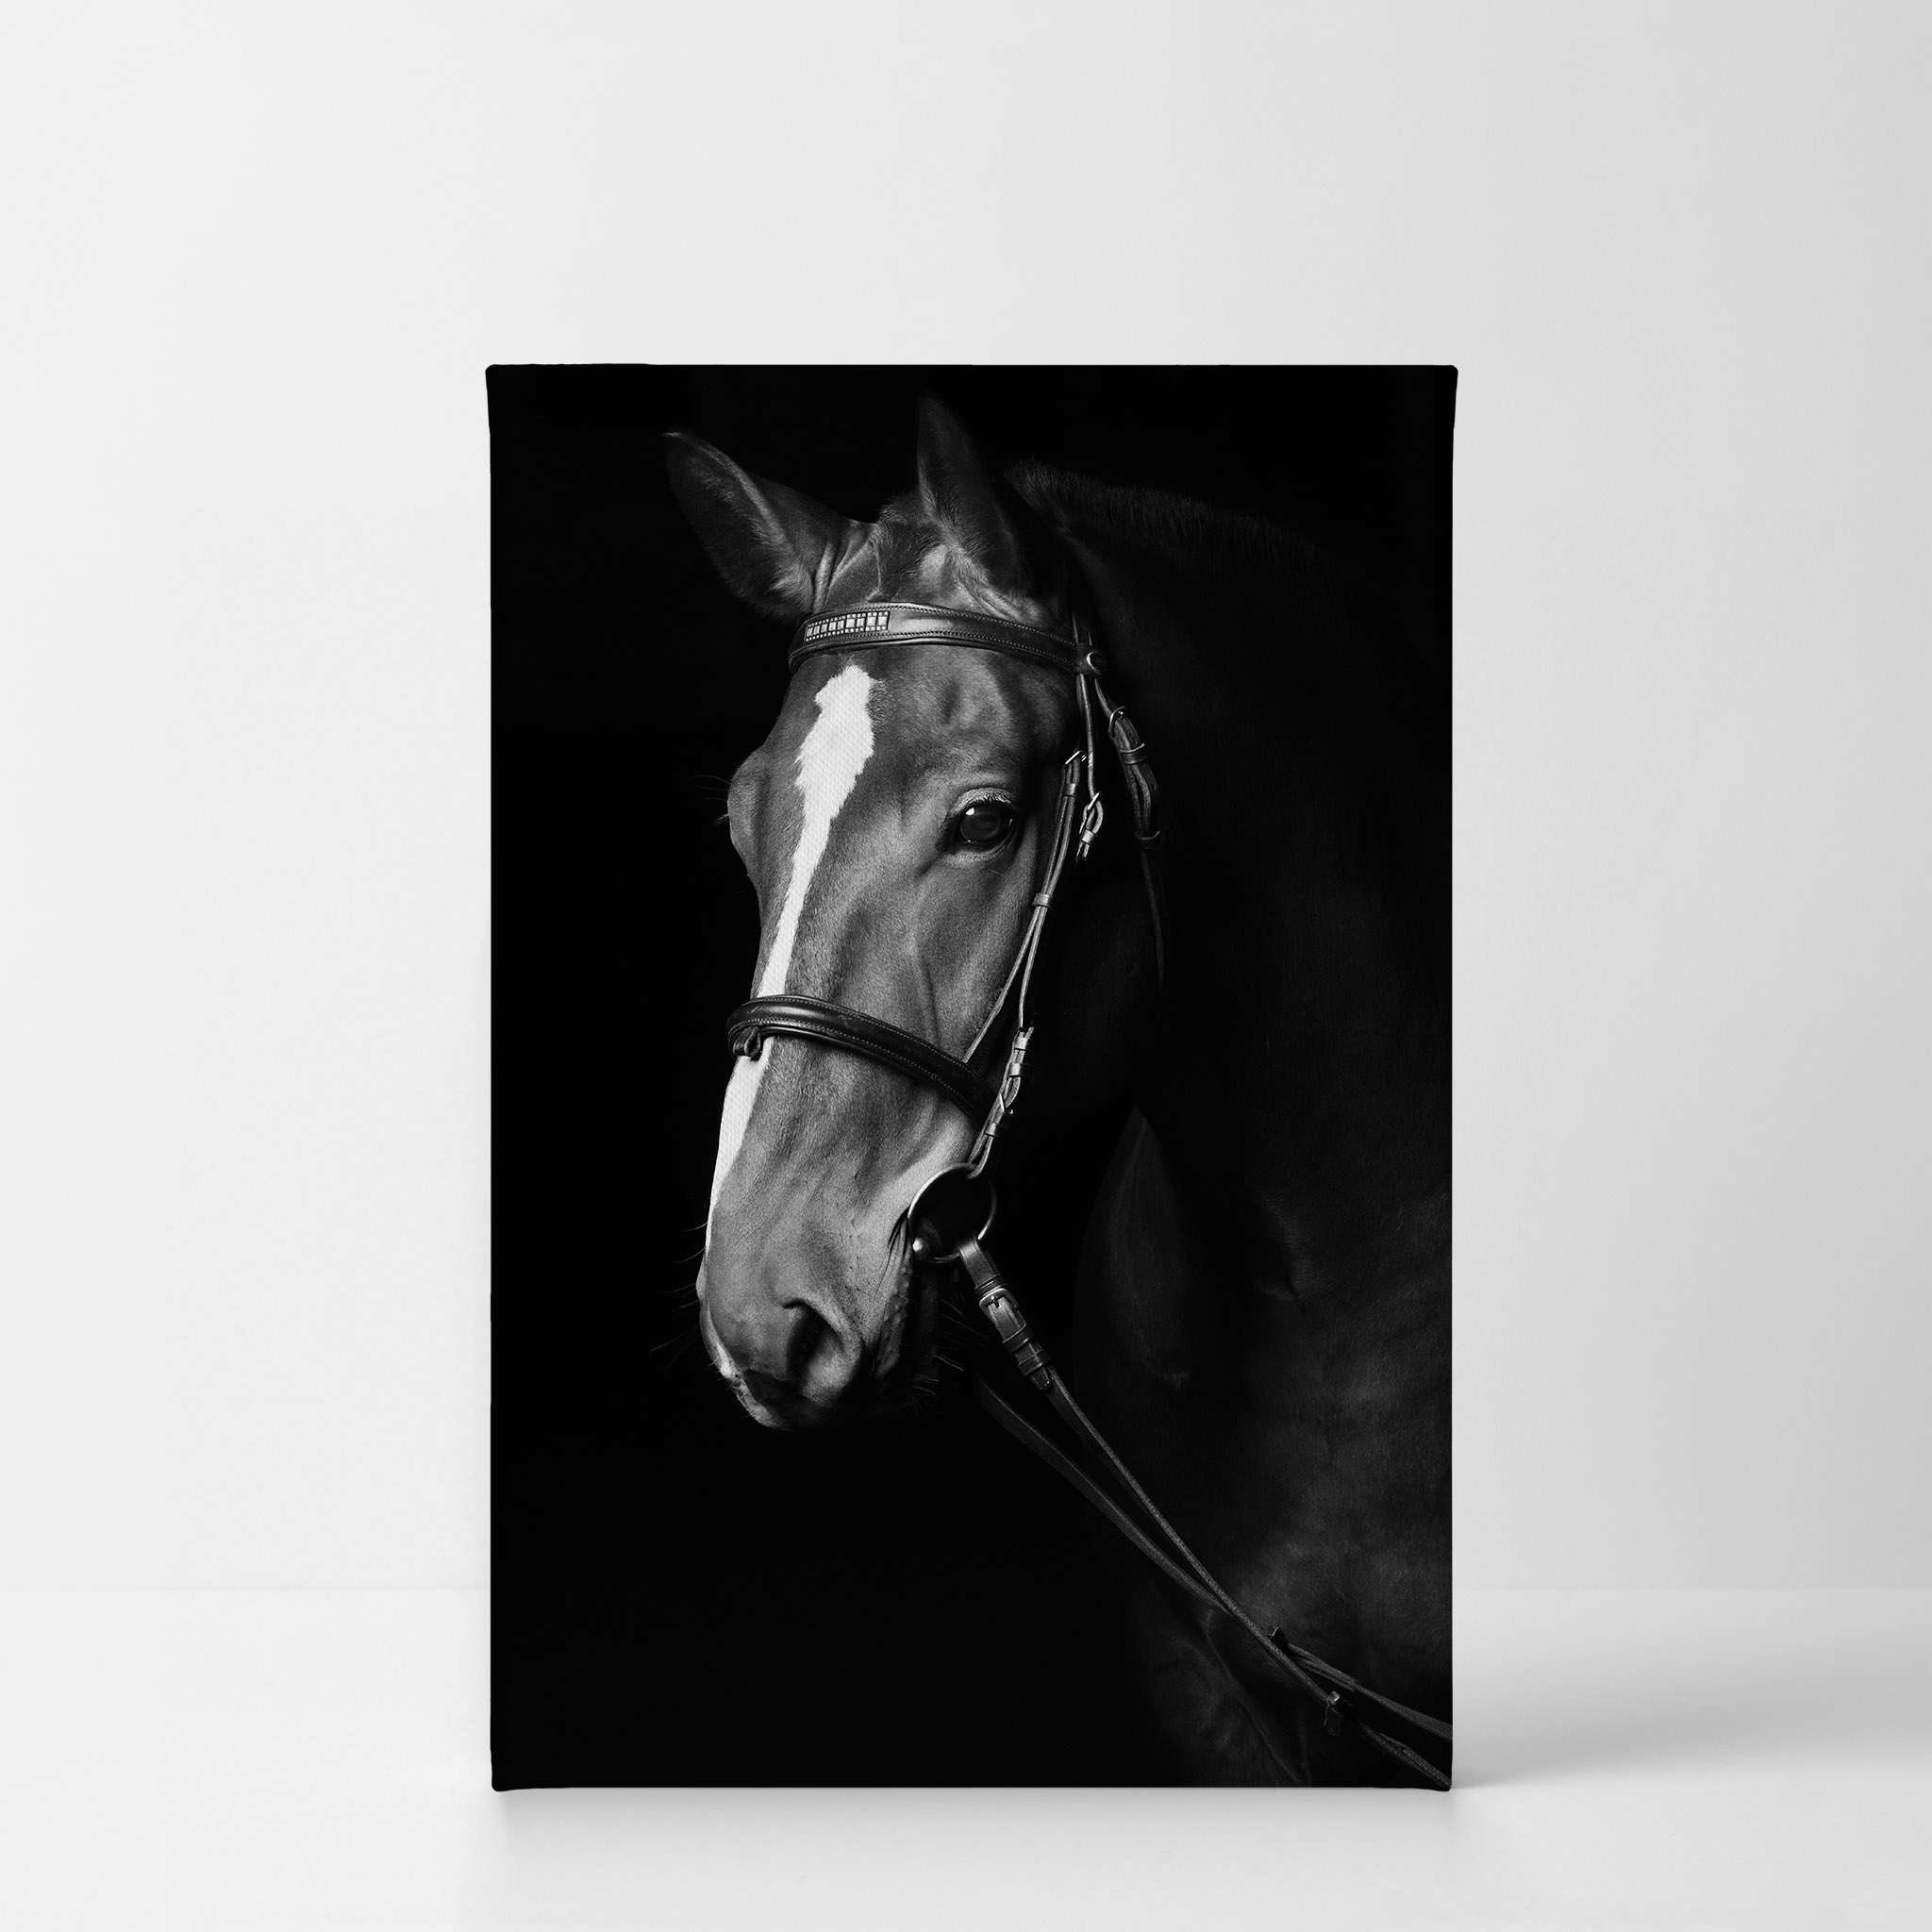 BEAUTIFUL BLACK HORSE PHOTO PICTURE PRINT ON FRAMED CANVAS WALL ART DECOR